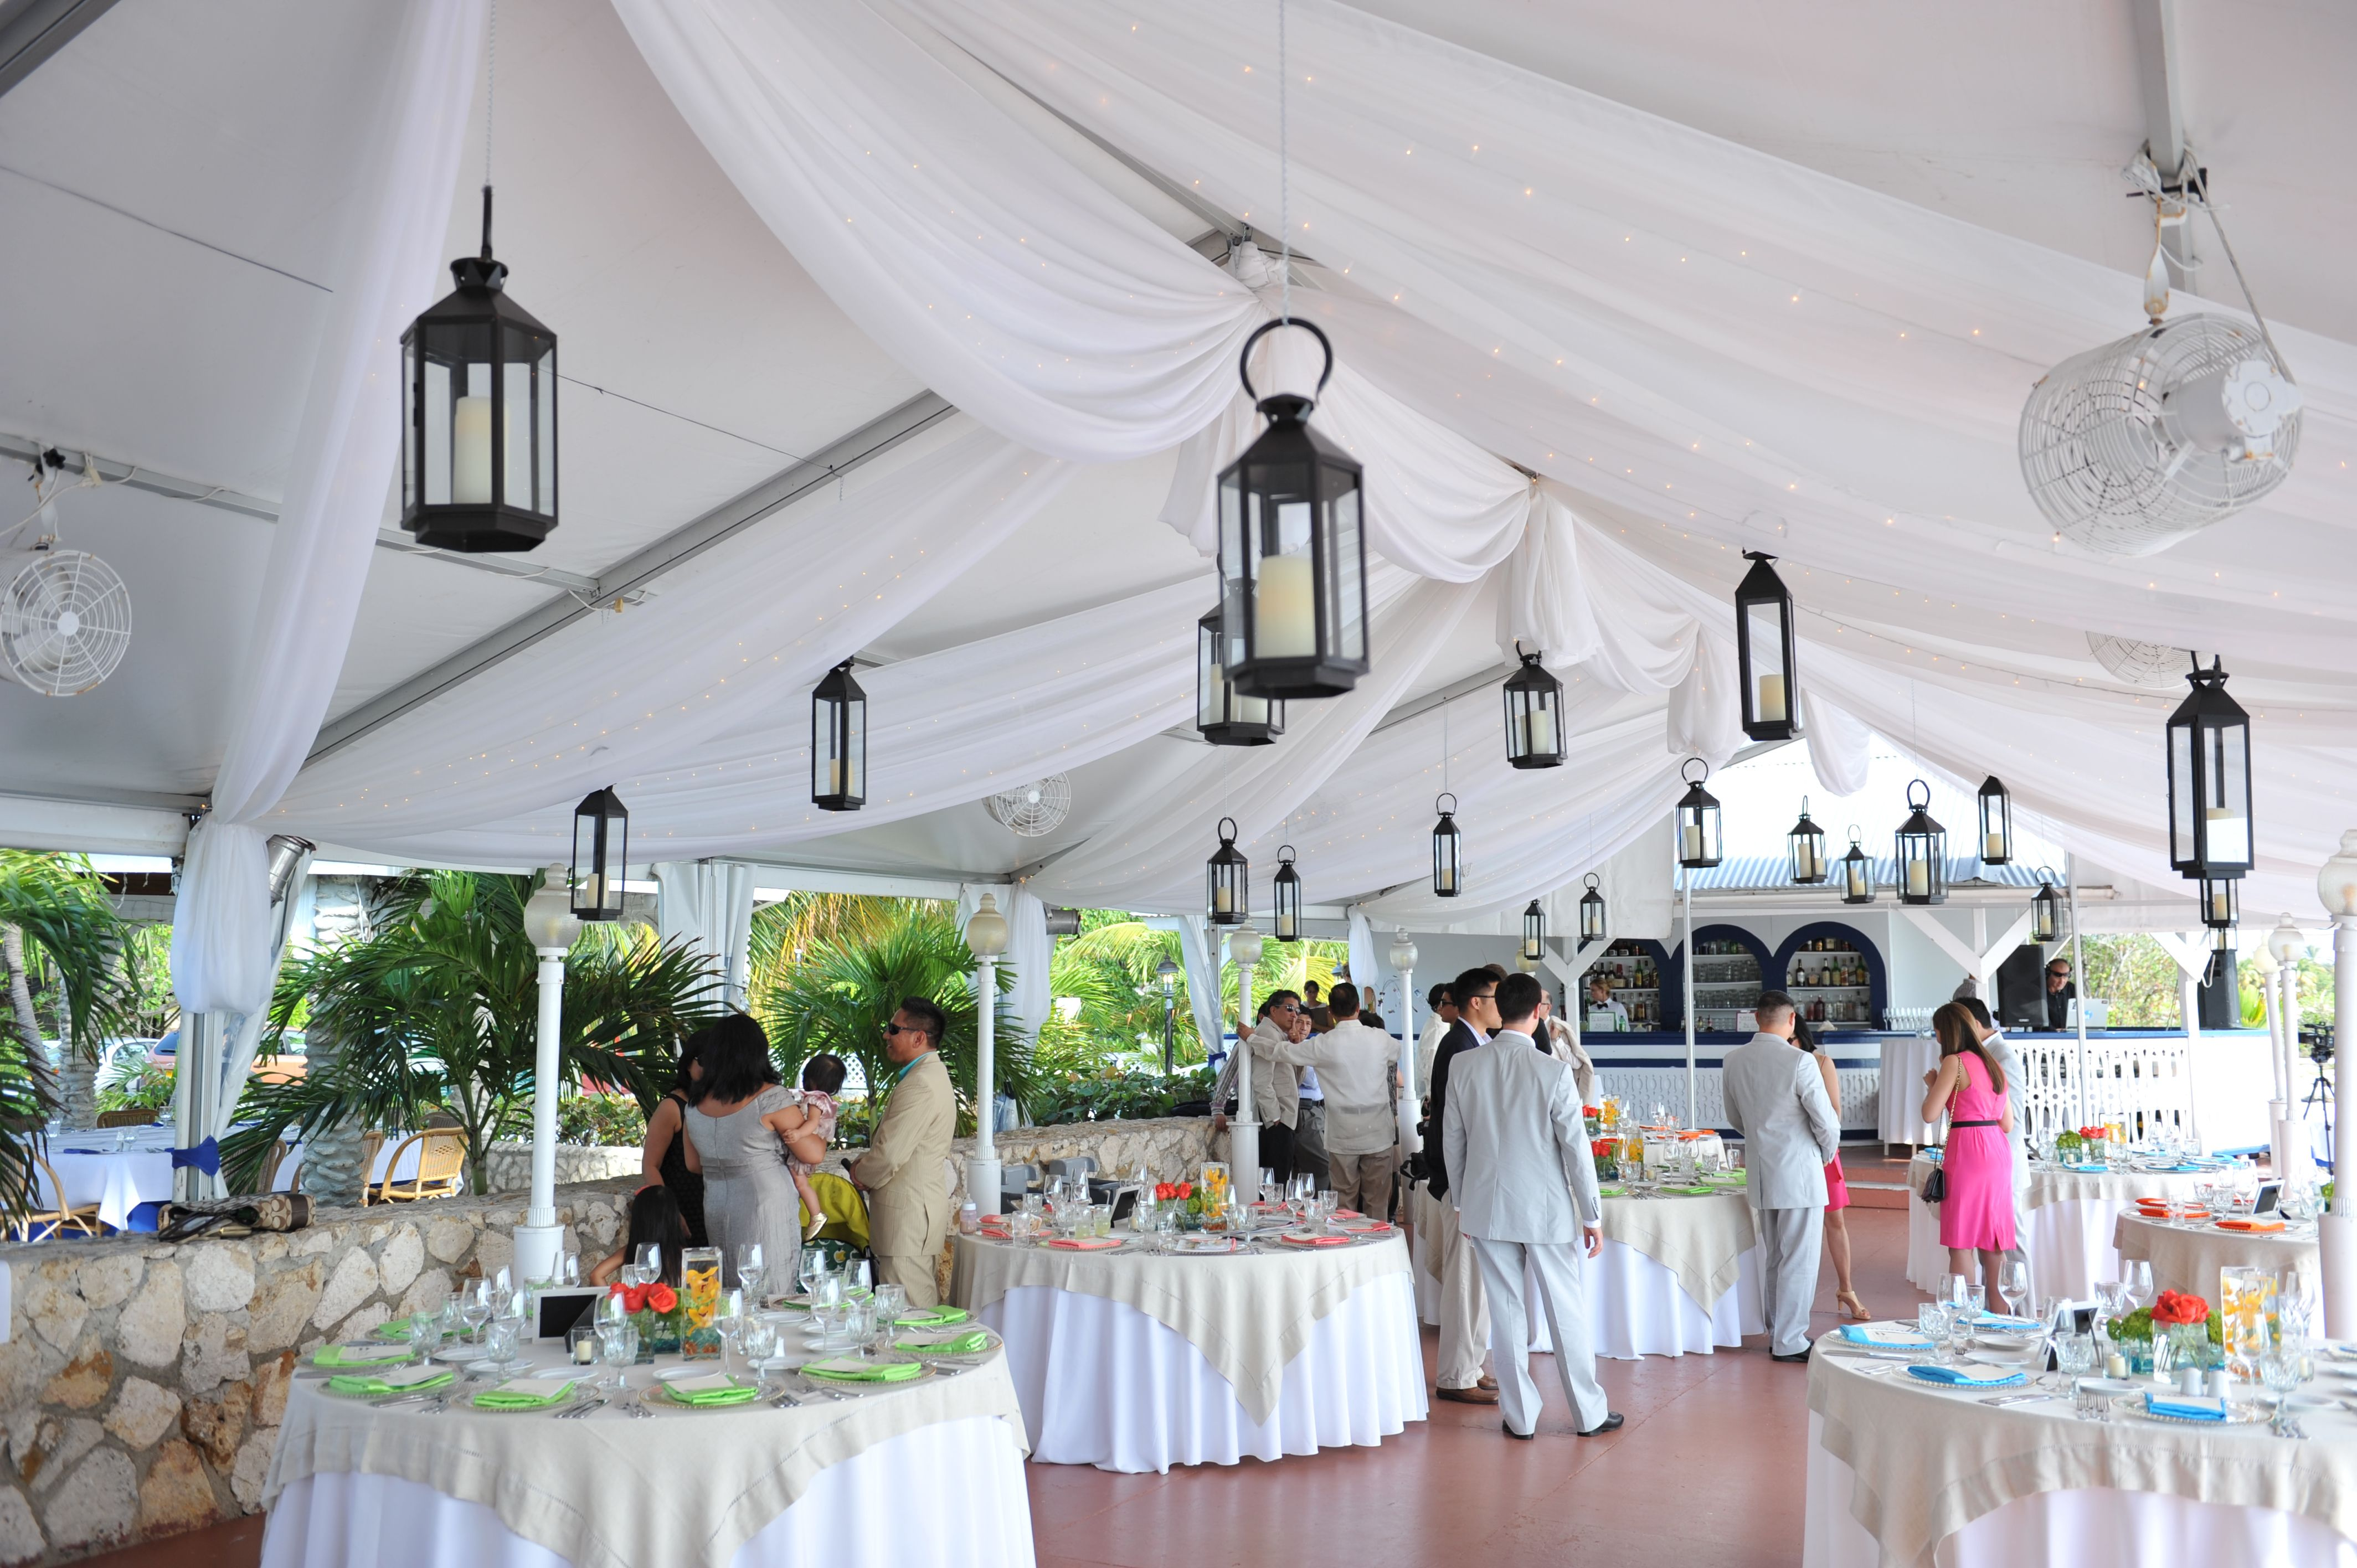 Your wedding bags for a grand getaway today s destination wedding - Cayman Destination Wedding Reception At Grand Old House Celebrations Ltd Cayman Weddings Events